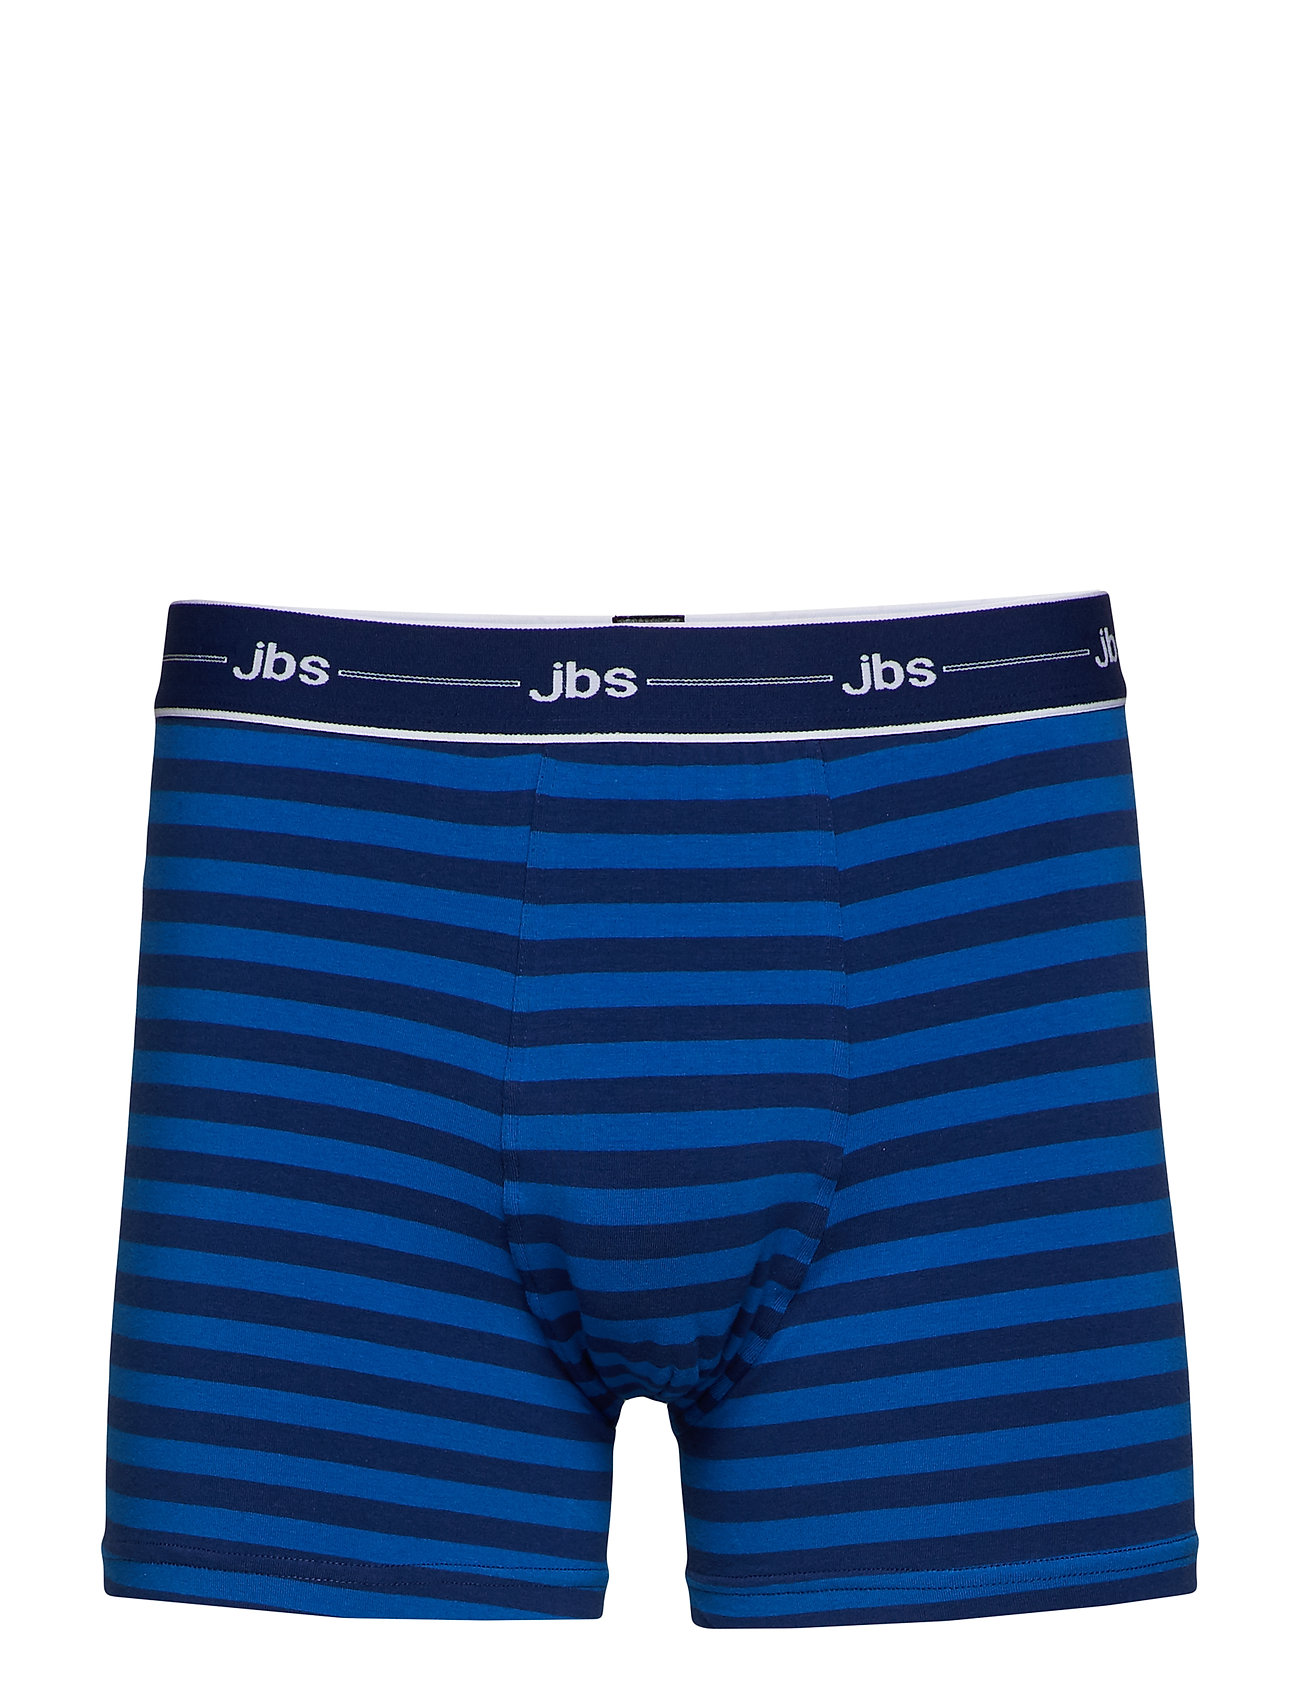 JBS JBS tights - BLUE STRI